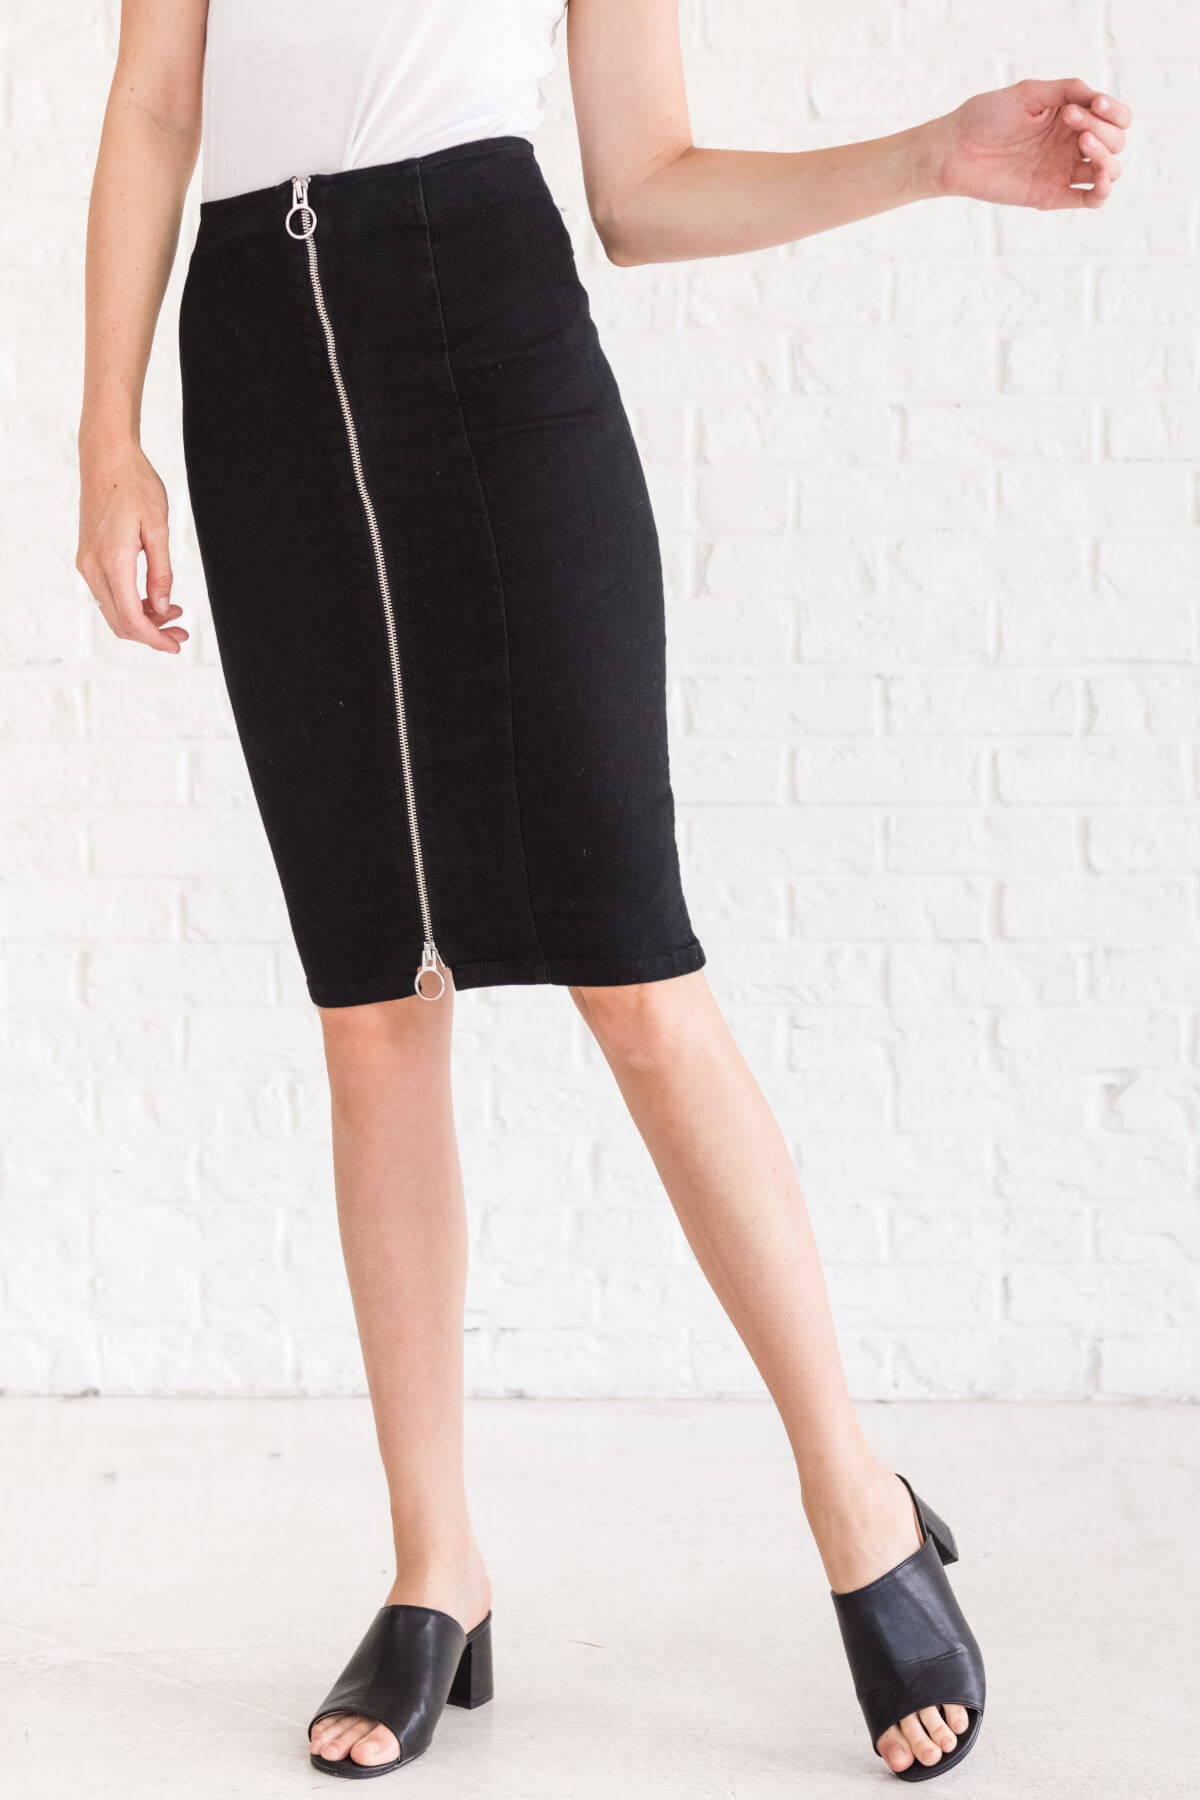 Black Zipper Zip Up Cute Black Midi Pencil Skirts Business Casual for Women